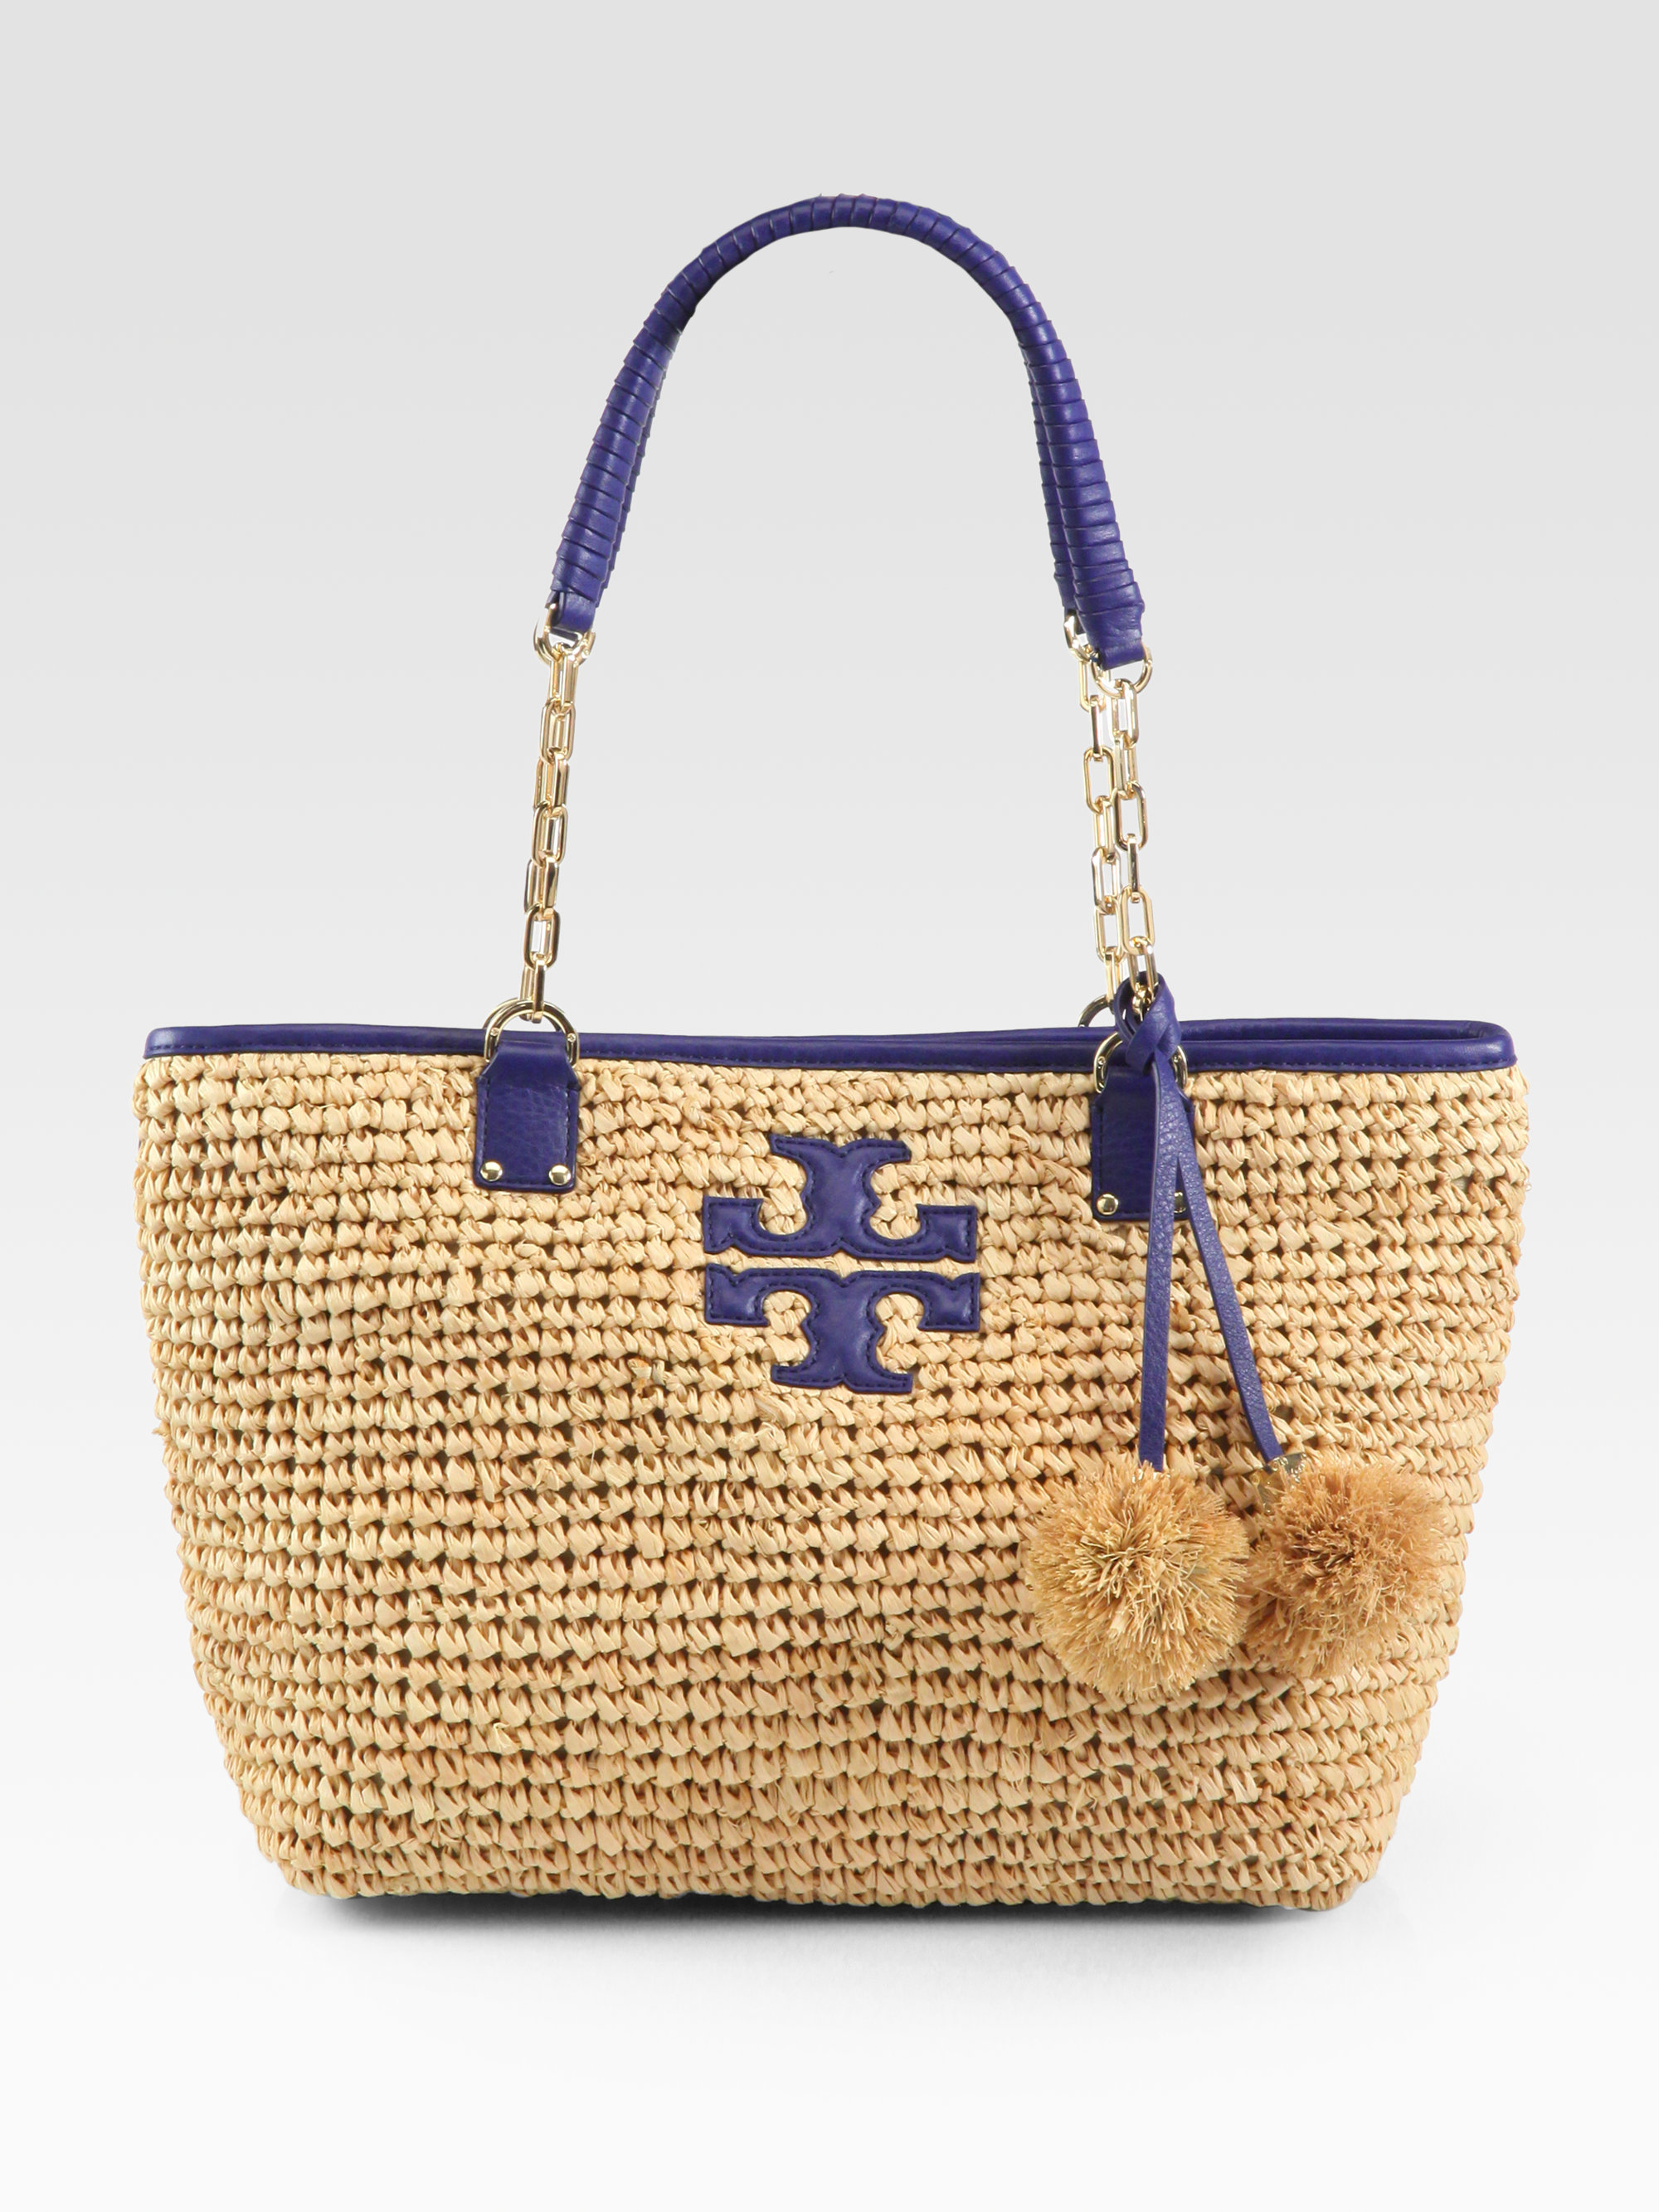 49efe7532ac Lyst - Tory Burch Thea Straw Tote in Brown